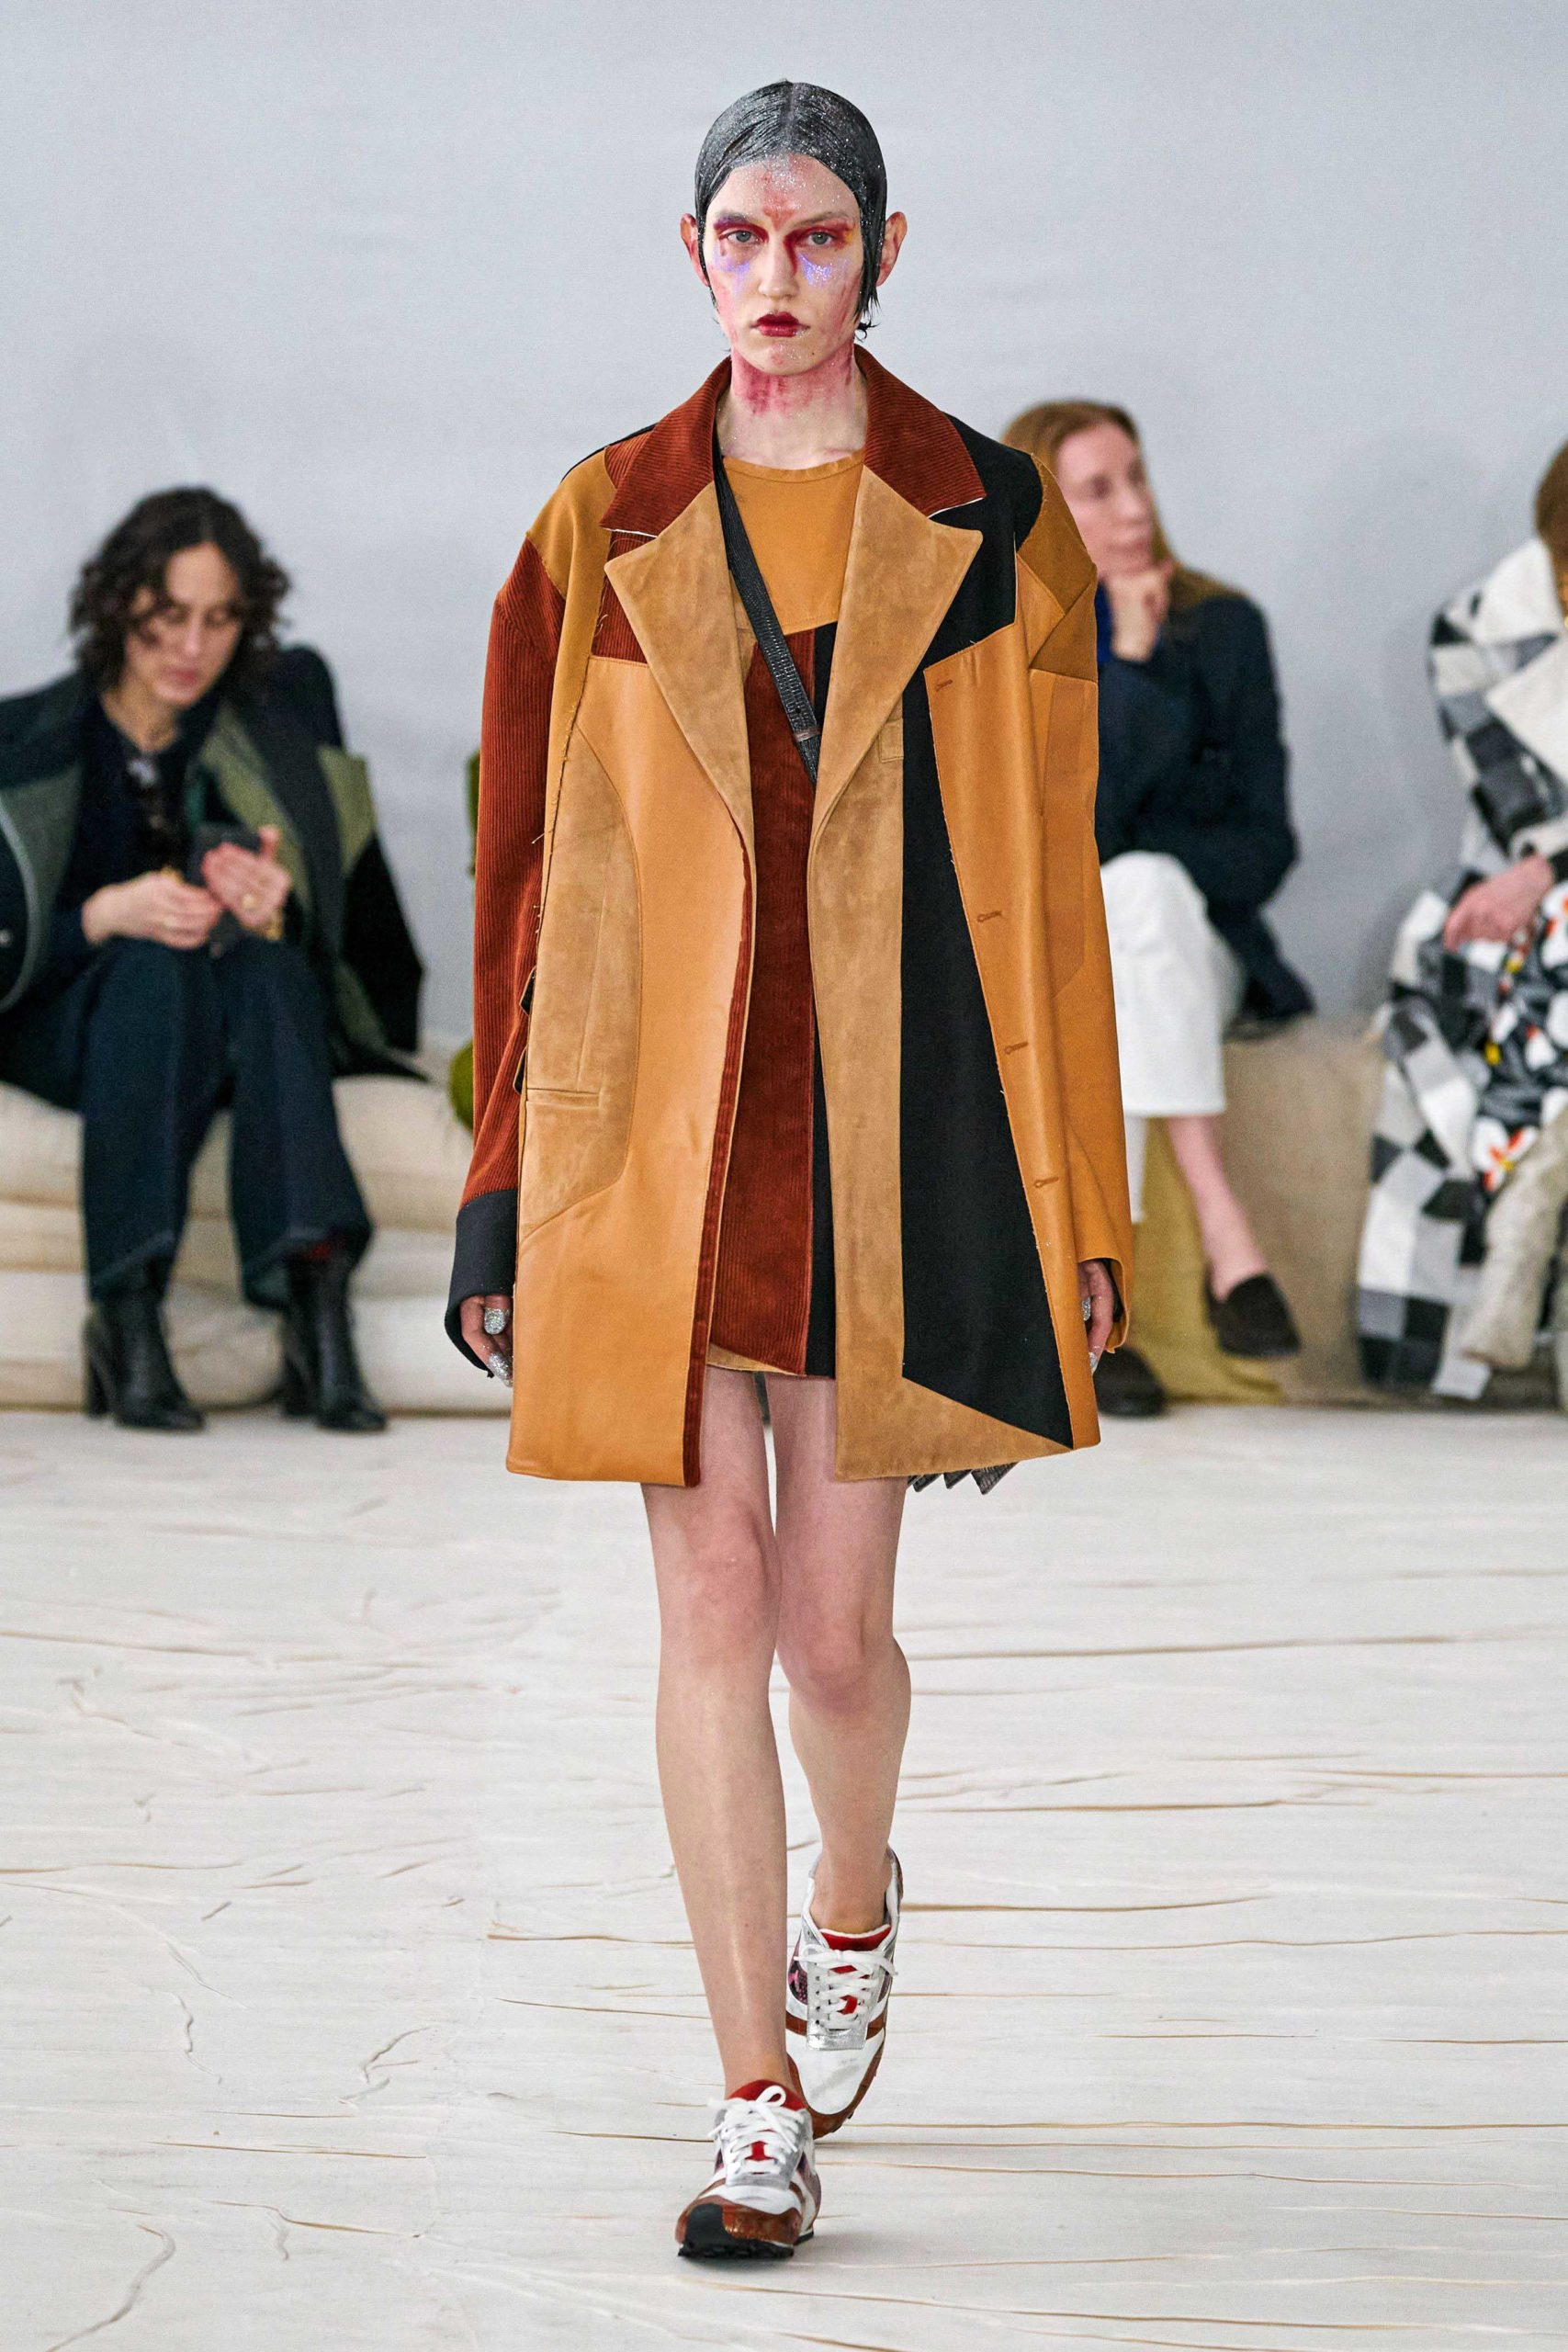 Marni Fall 2020 trends runway coverage Ready To Wear Vogue leather patchwork